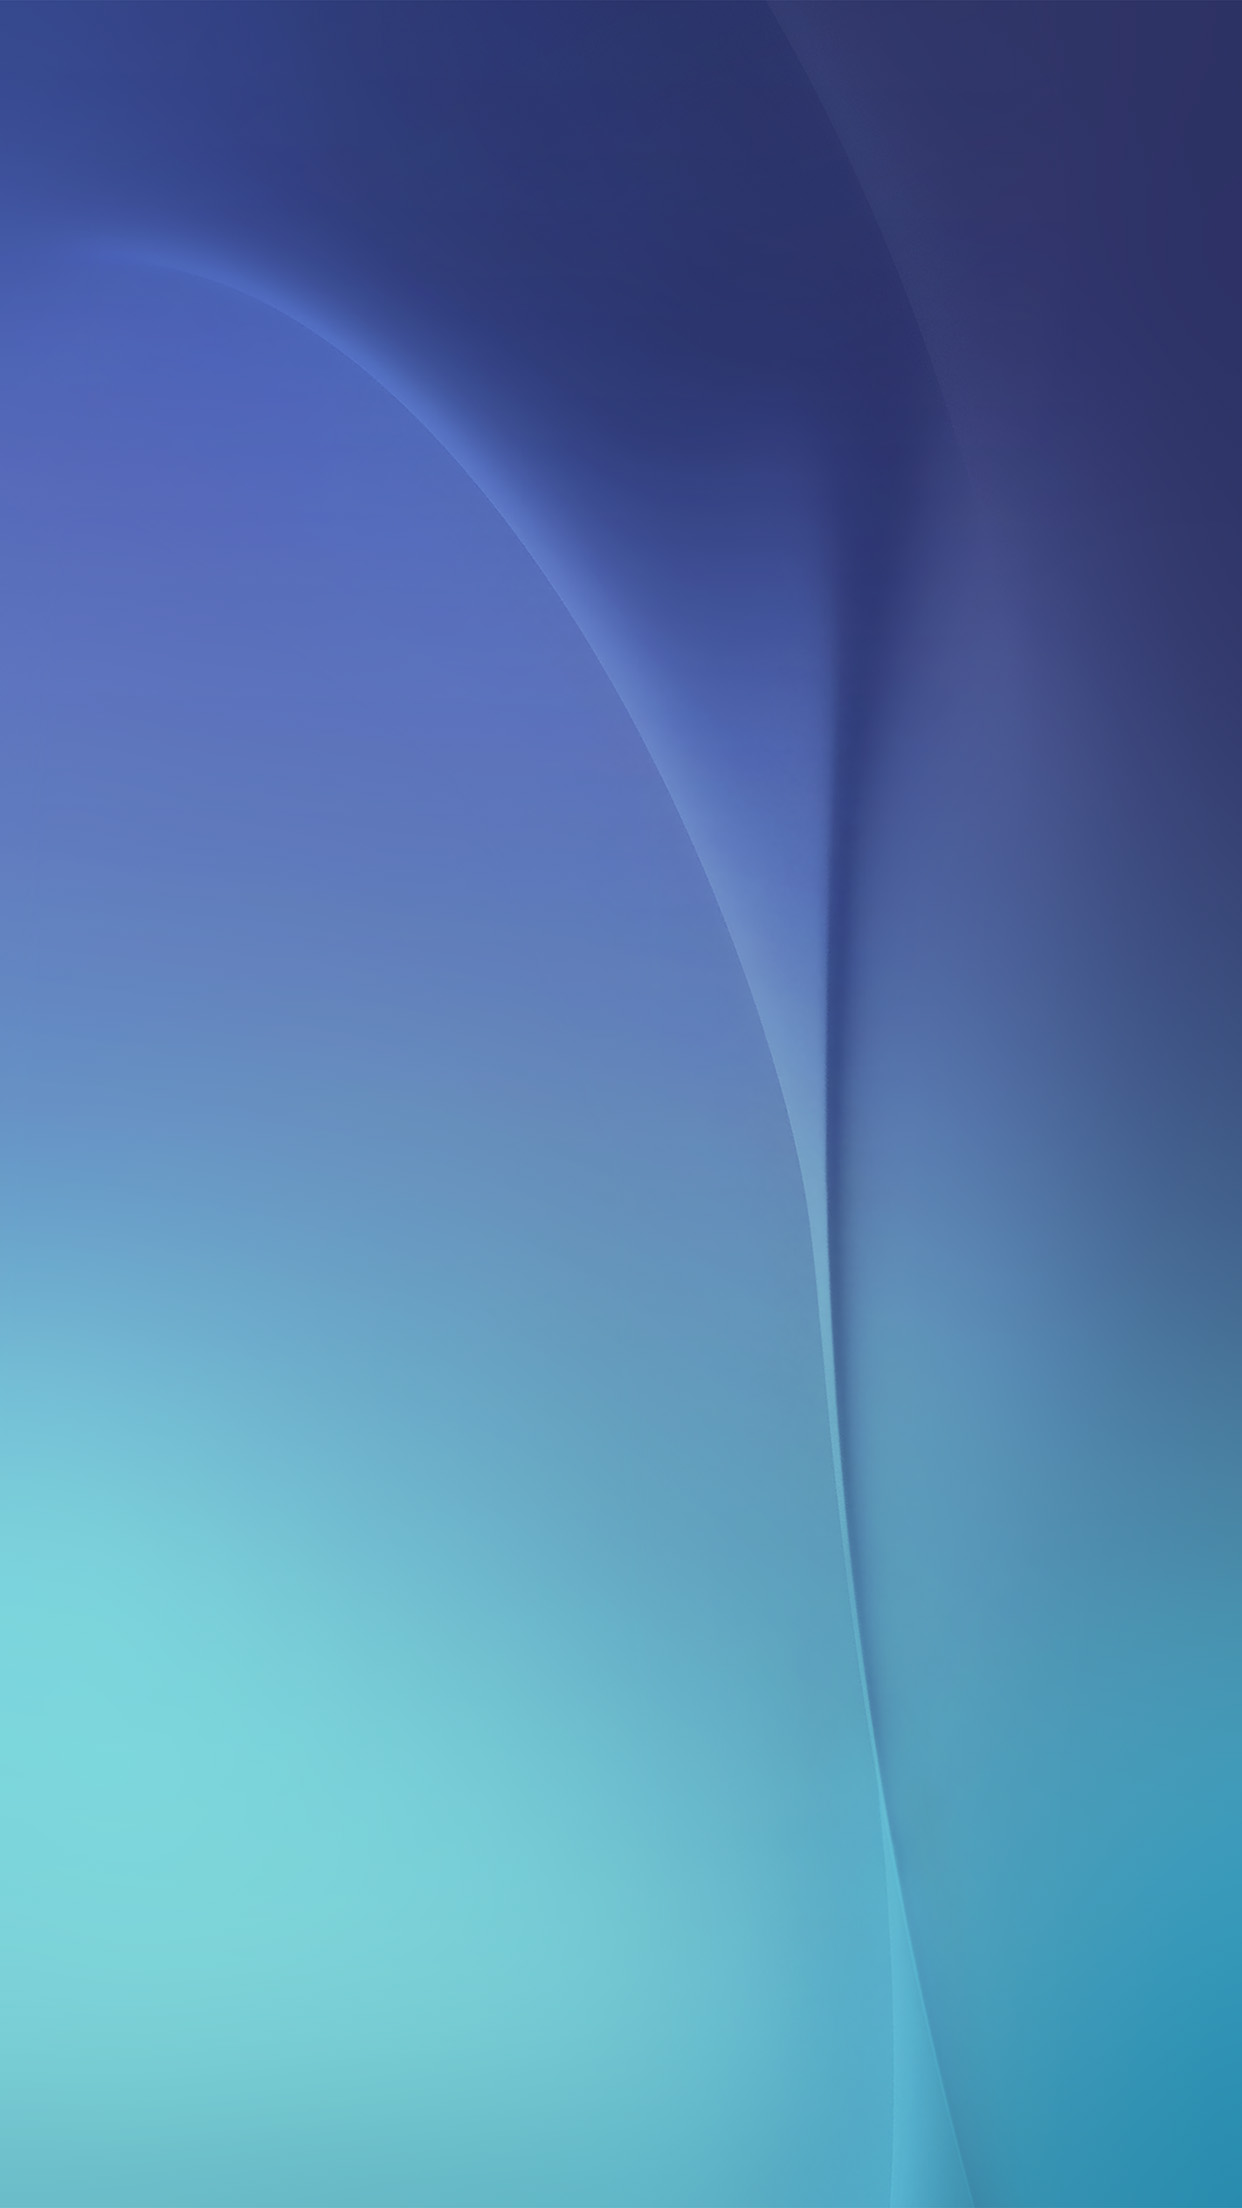 Samsung Galaxy S7 Edge Fall Wallpaper For Iphone X Iphonexpapers